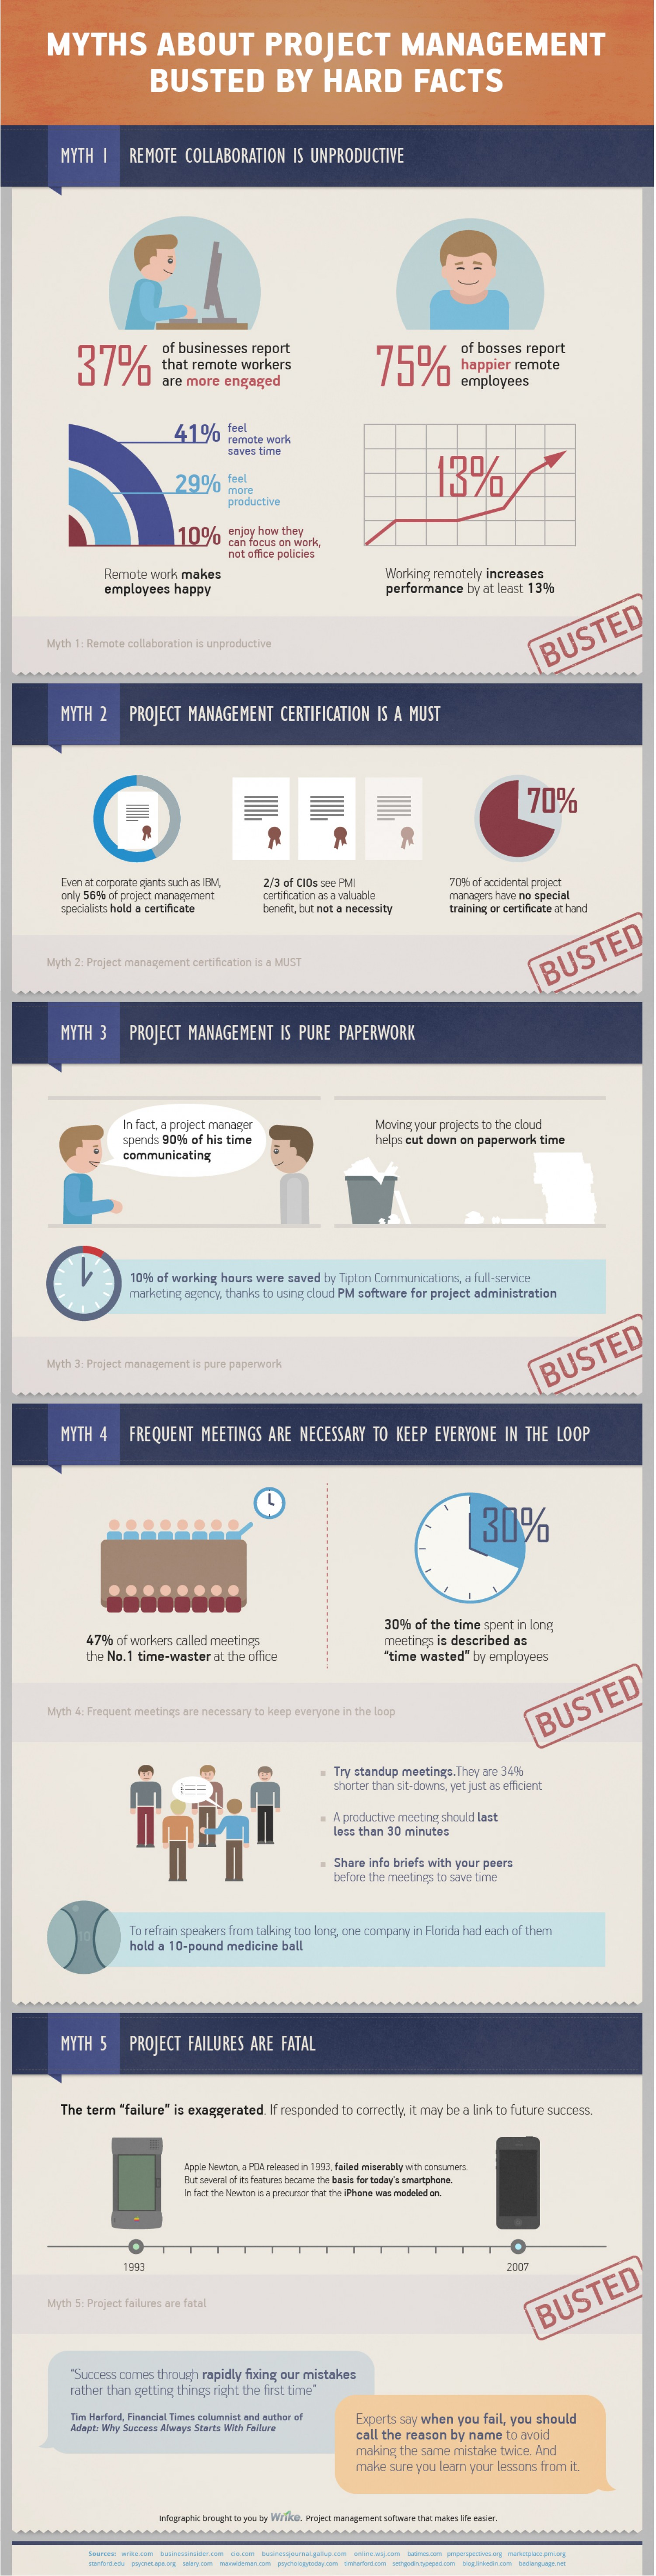 myths-about-project-management-busted-by-hard-facts_52de7d908f1cd_w1500